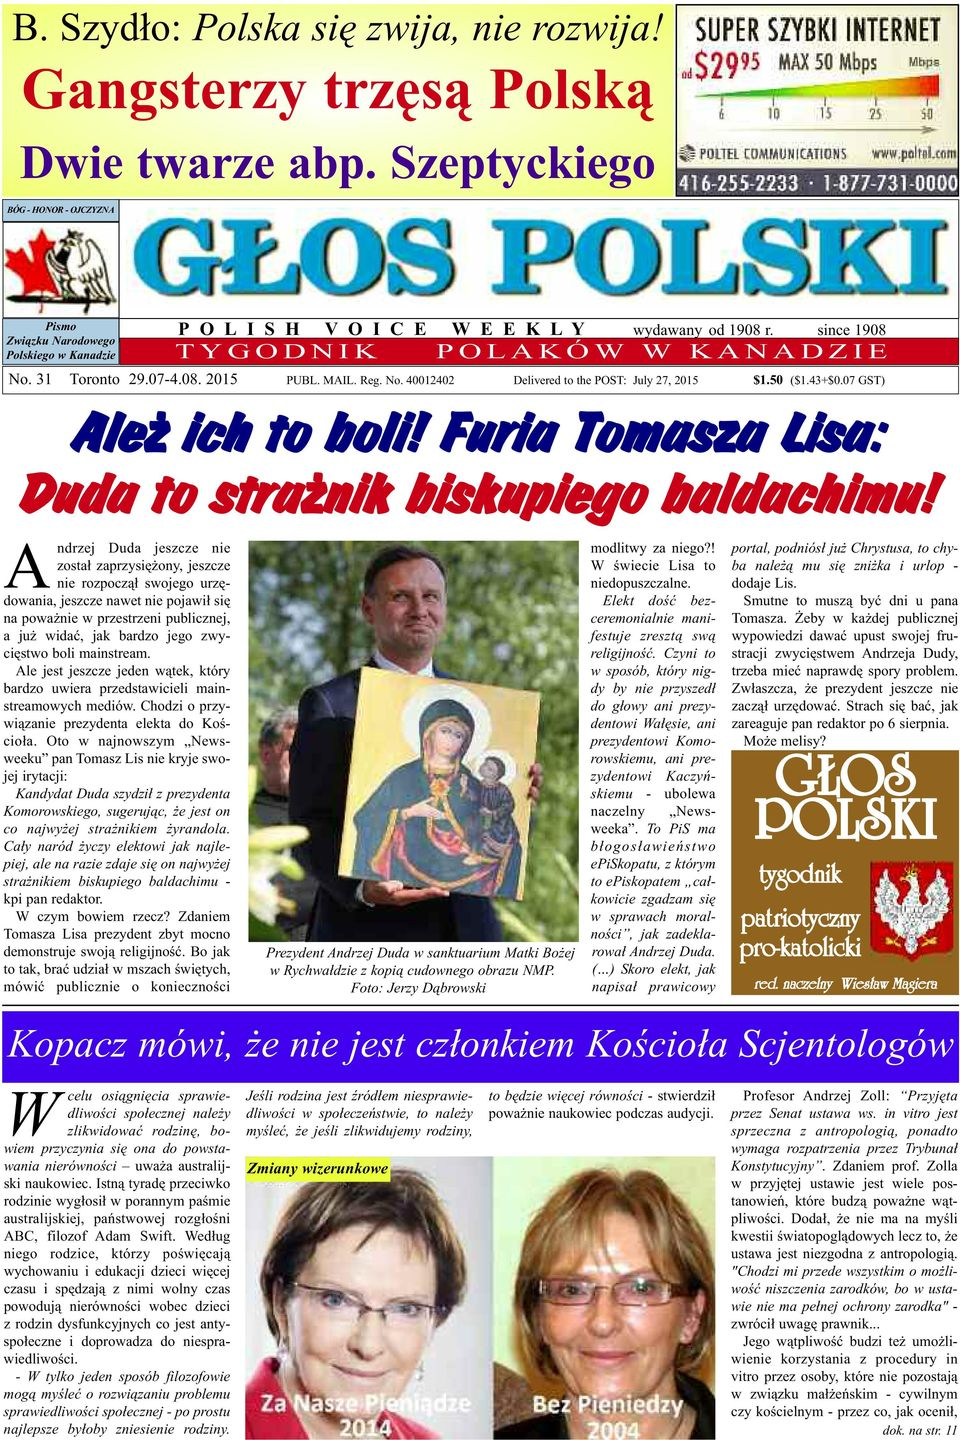 31 Toronto PUBL. MAIL. Reg. No. 40012402 Delivered to the POST: July 27, 2015 $1.50 ($1.43+$0.07 GST) Ale ich to boli! Furia Tomasza Lisa: Duda to stra nik biskupiego baldachimu!